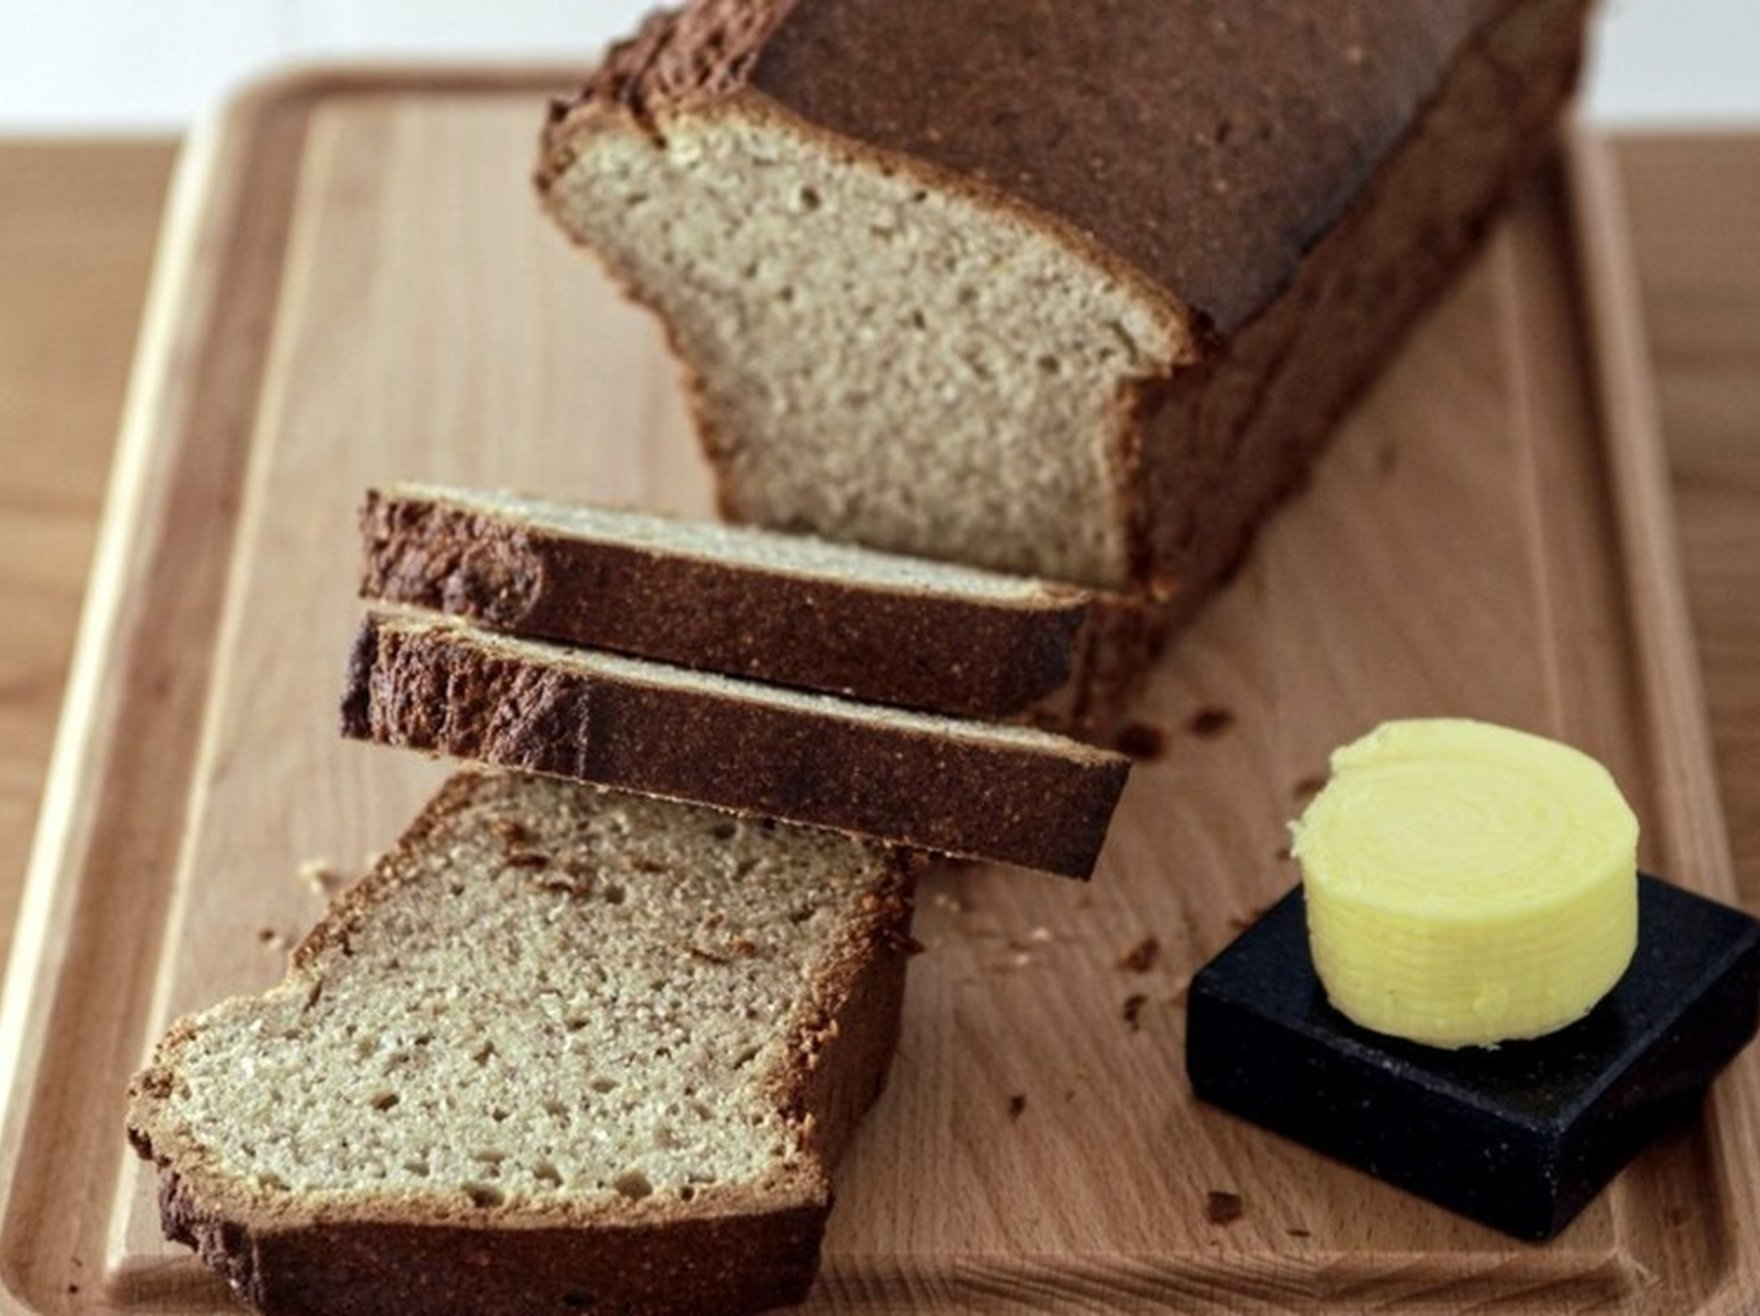 James St Cookery School: Banana loaf and polenta and yoghurt cake